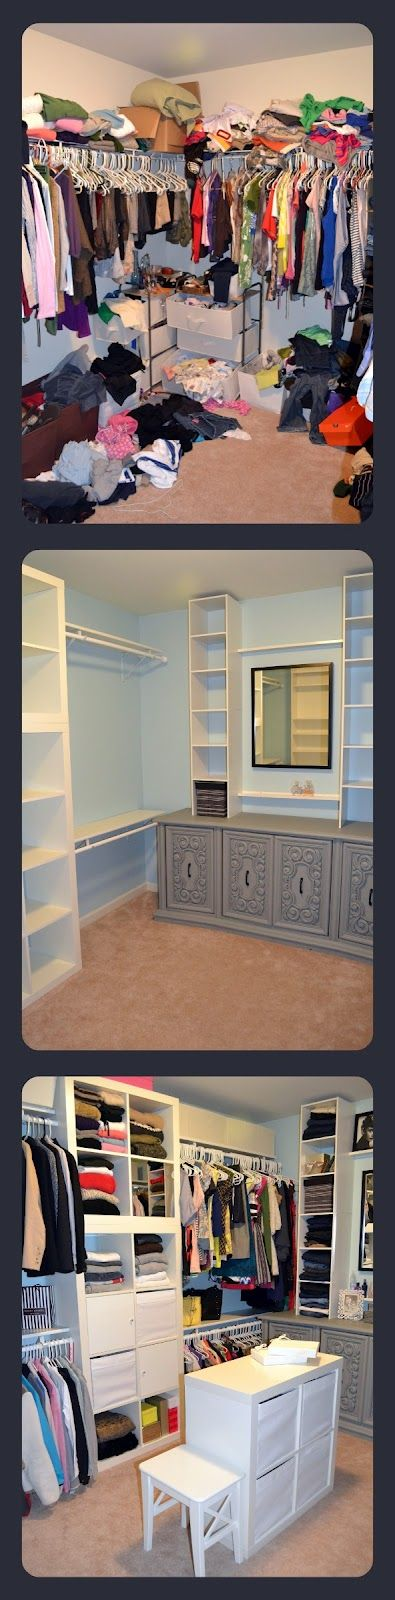 closet+makeover+with+ikea+expedit+cheap+closet+buit+ins.jpg 395×1,600 pixels